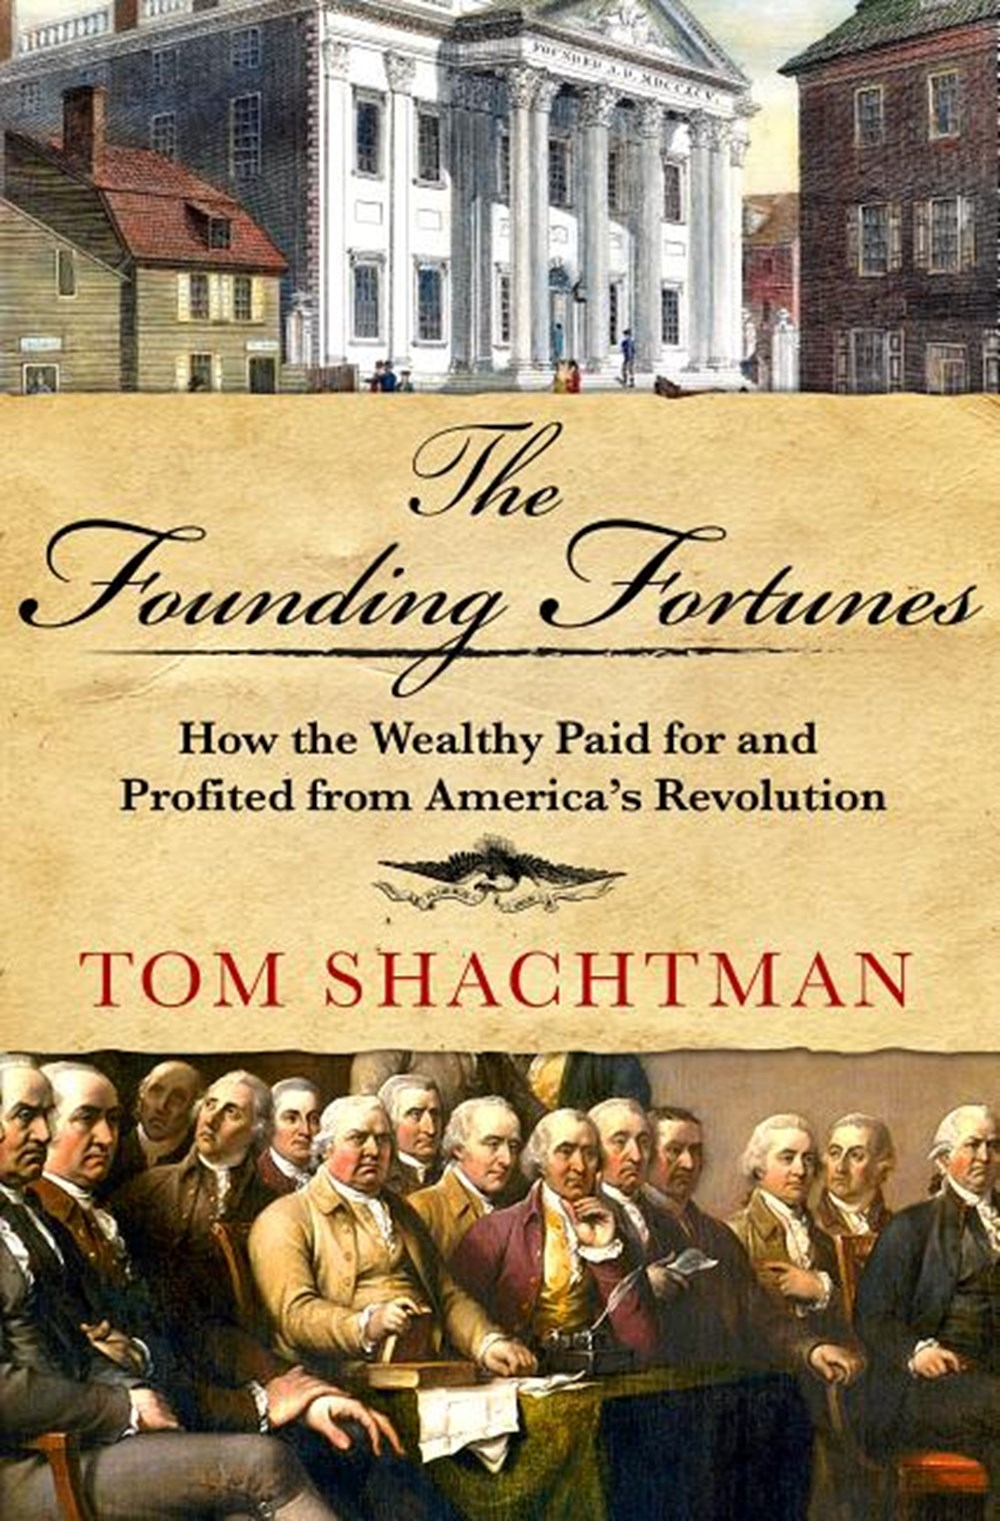 Founding Fortunes How the Wealthy Paid for and Profited from America's Revolution